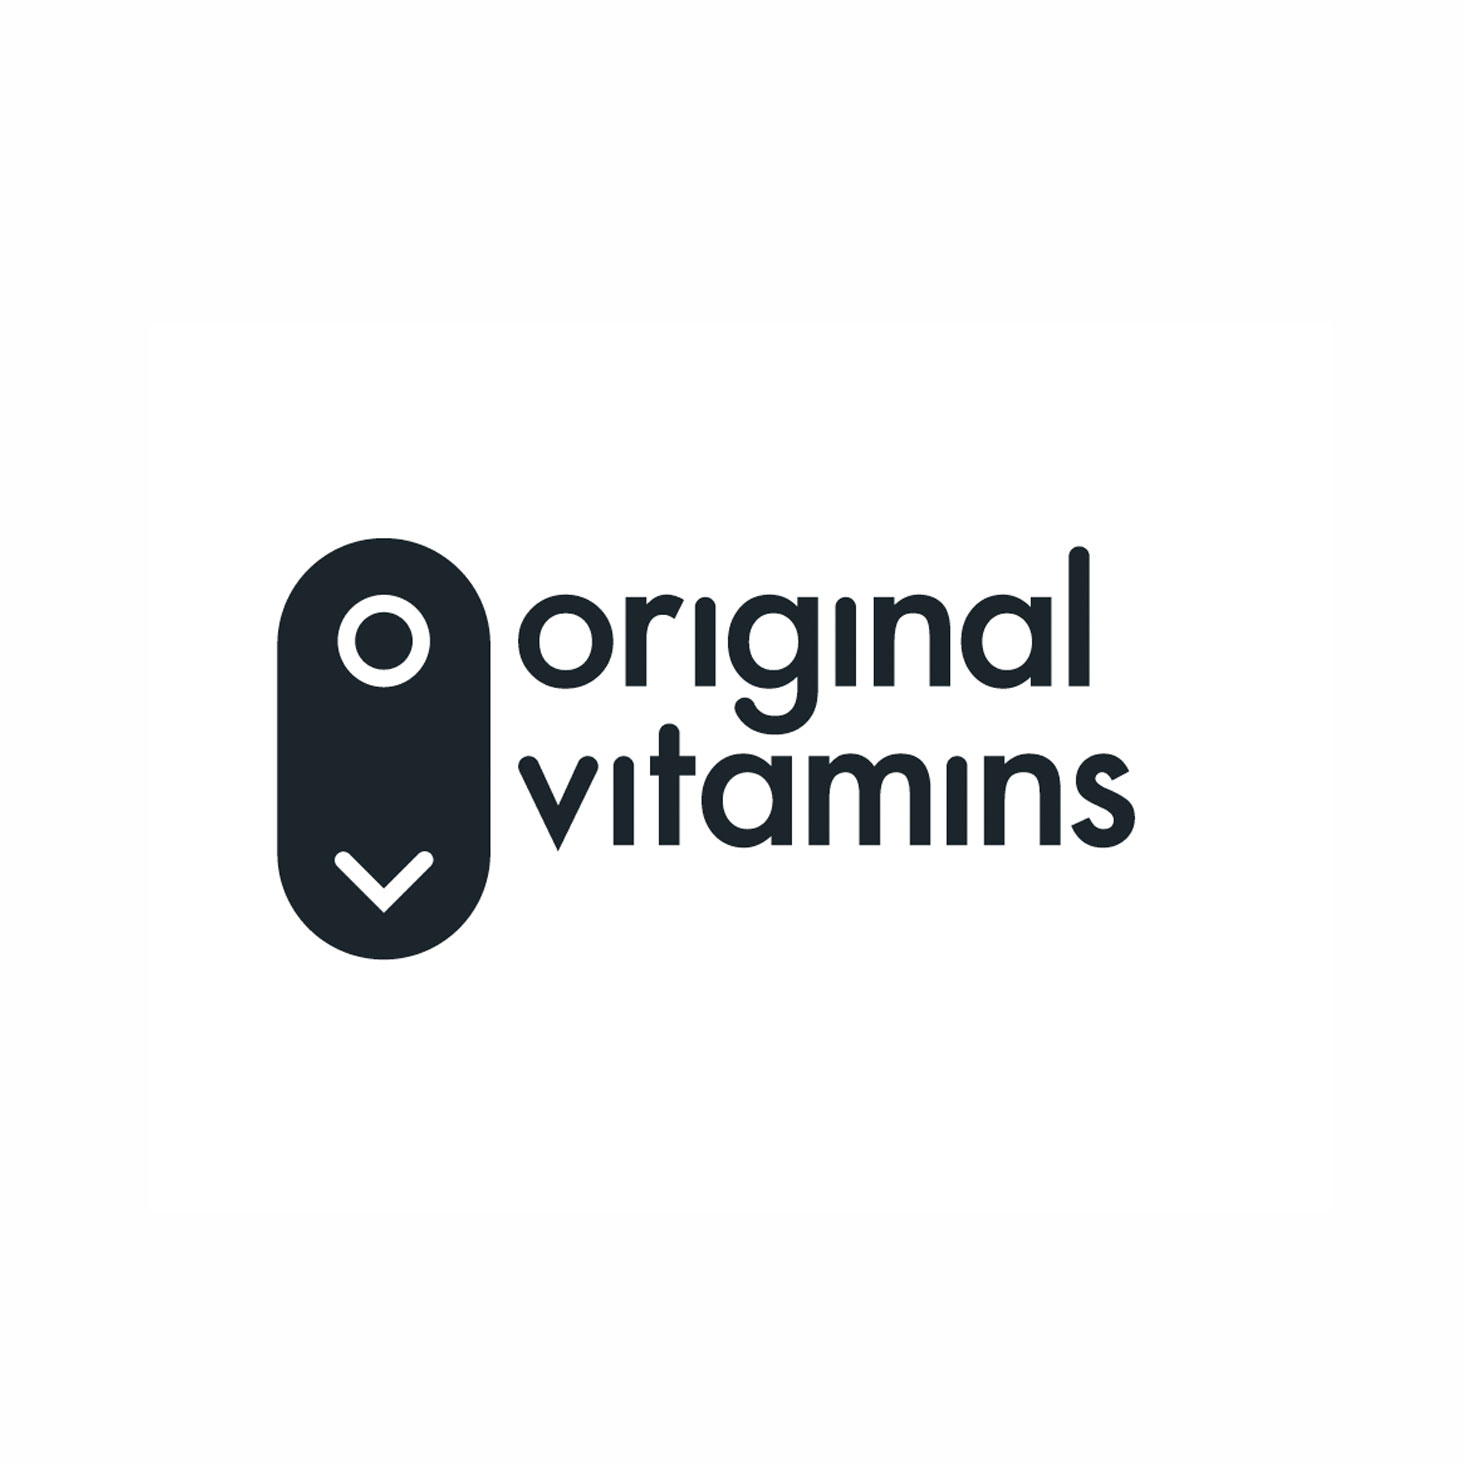 OriginalVitamins.jpg